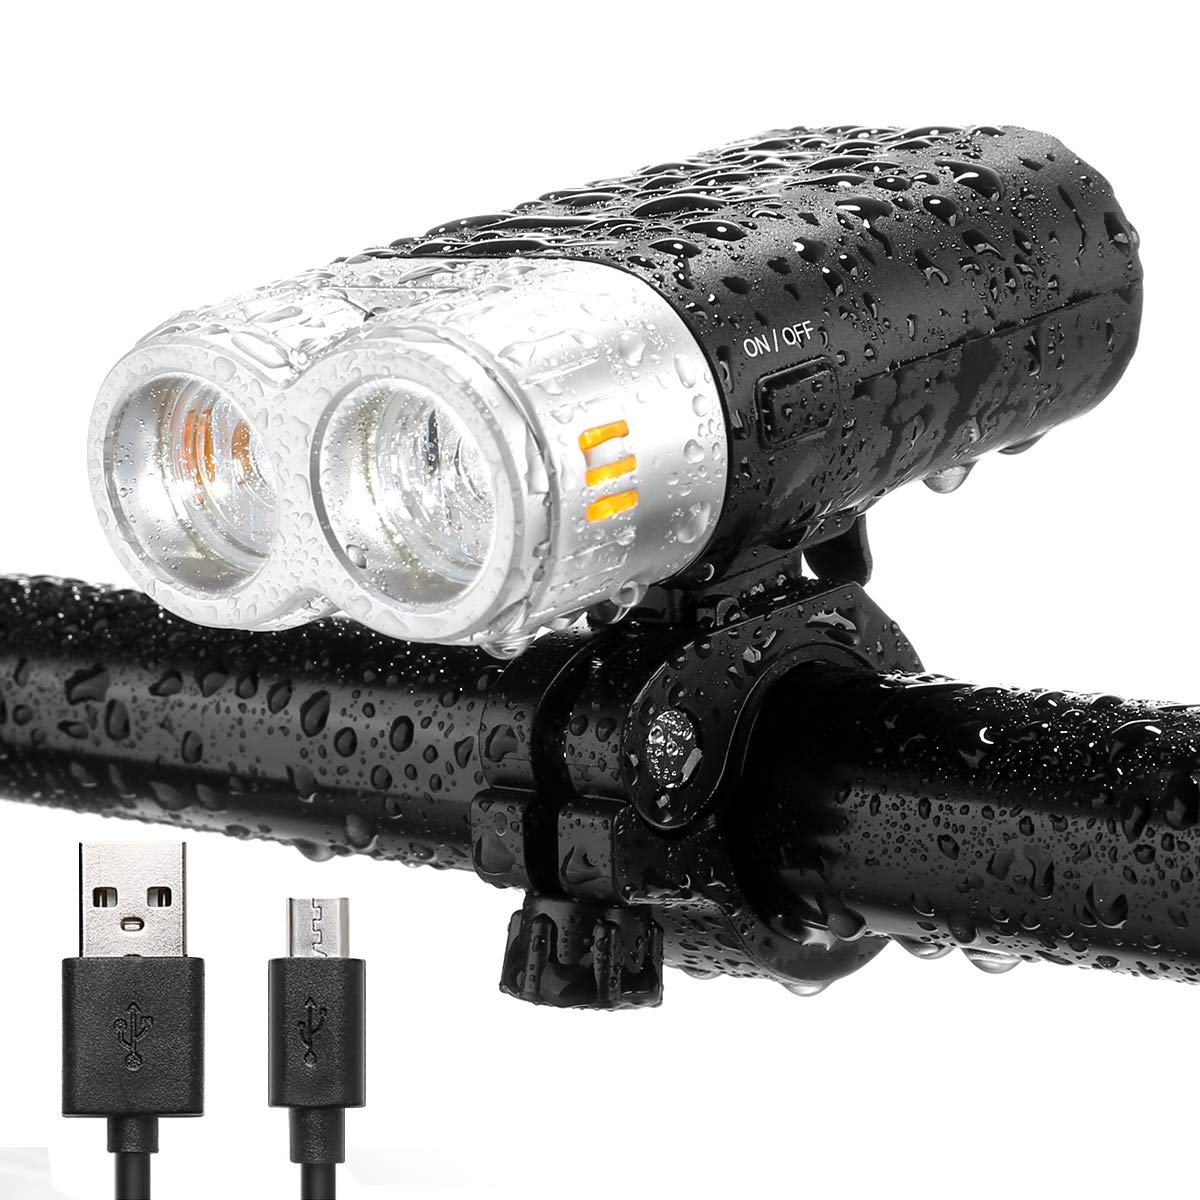 LE USB Rechargeable LED Bike Headlight, Super Bright CREE LED, 500lm, Waterproof Front Light, 4 Lighting Modes Bicycle Light for Road, Cycling and More